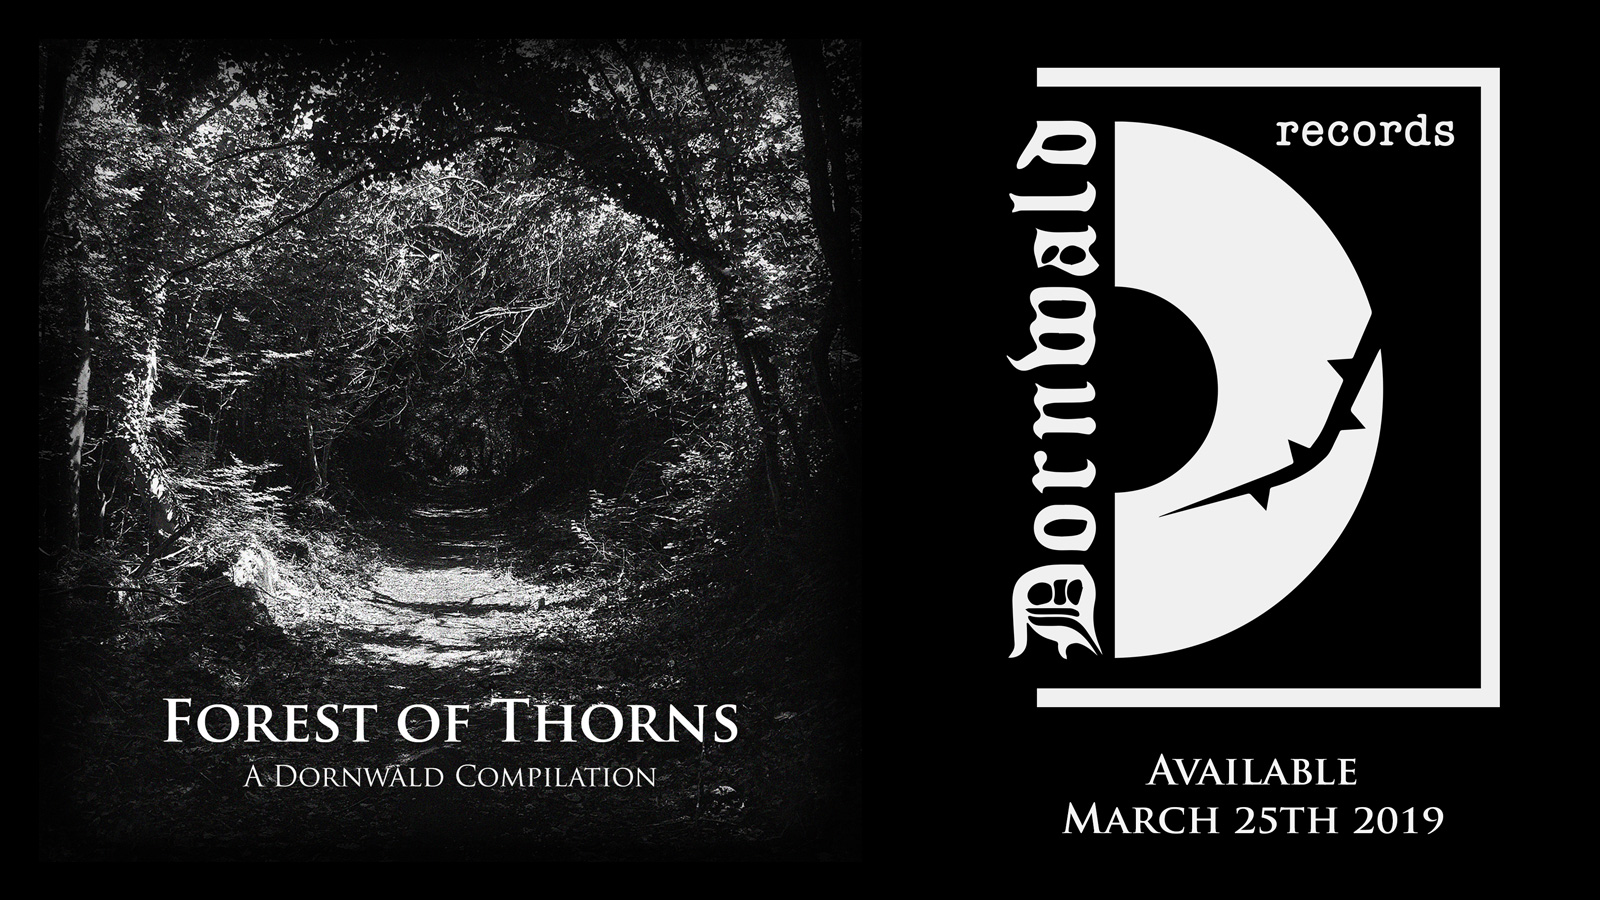 Forest Of Thorns A Dornwald Compilation Is Released